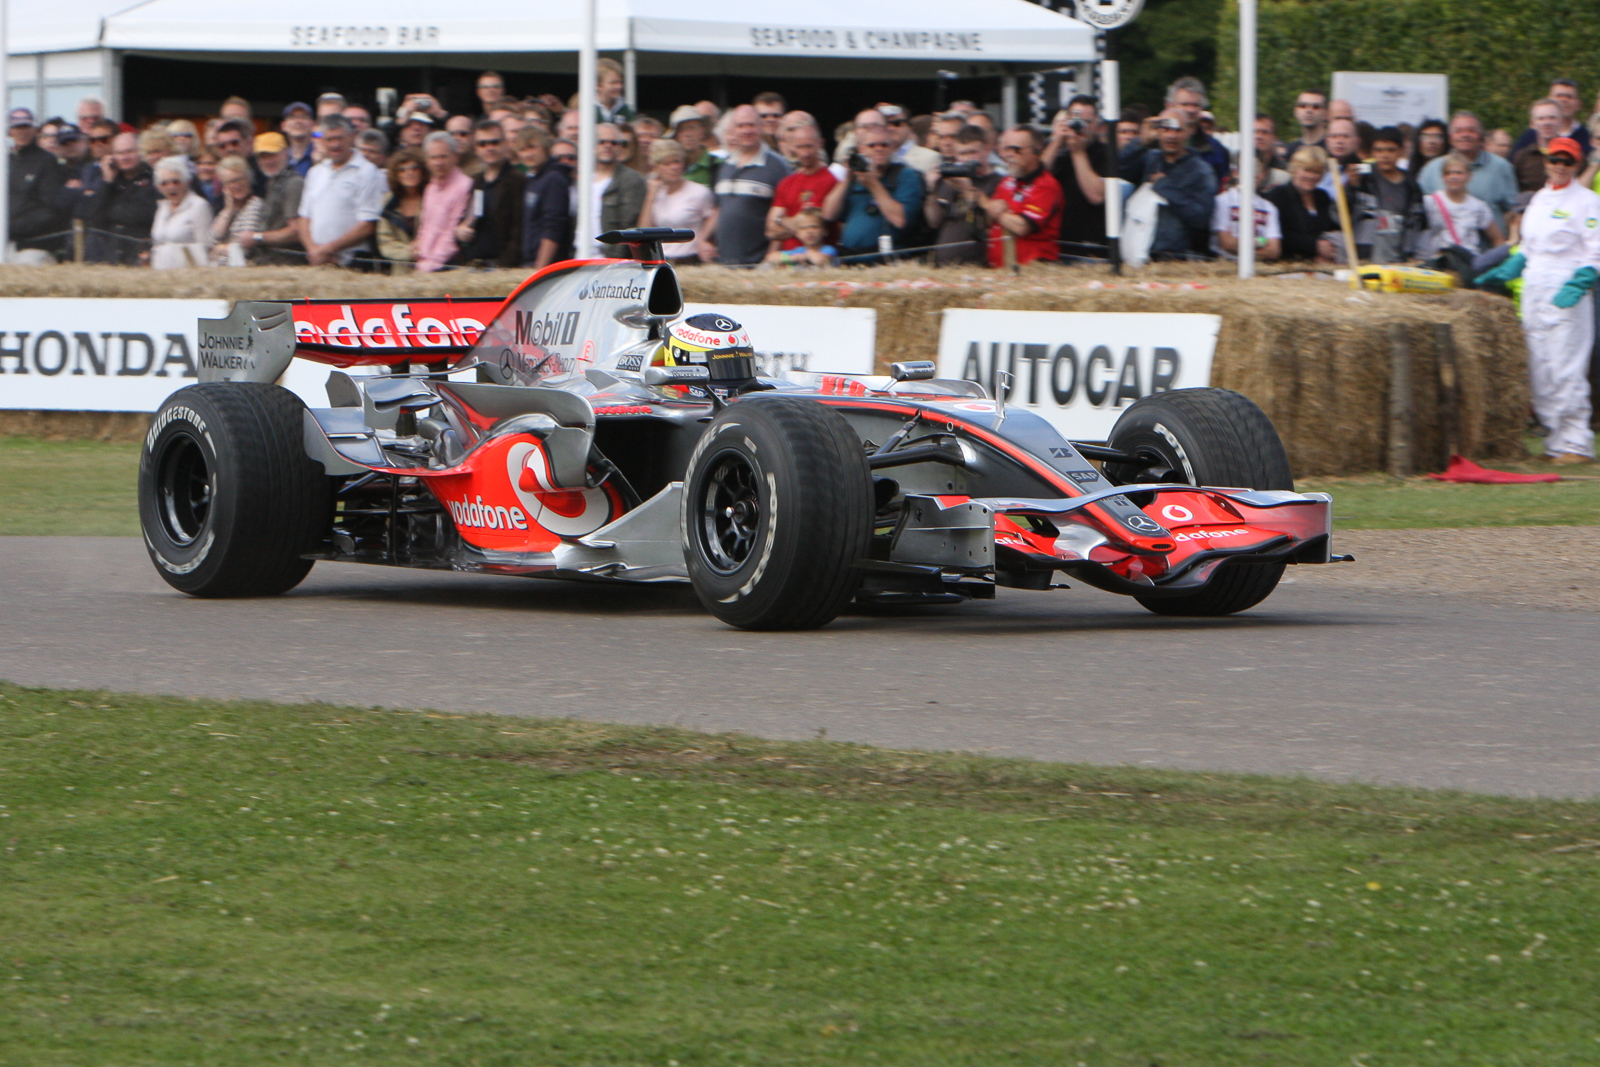 20080711 - Goodwood Festival of Speed -080711 -007